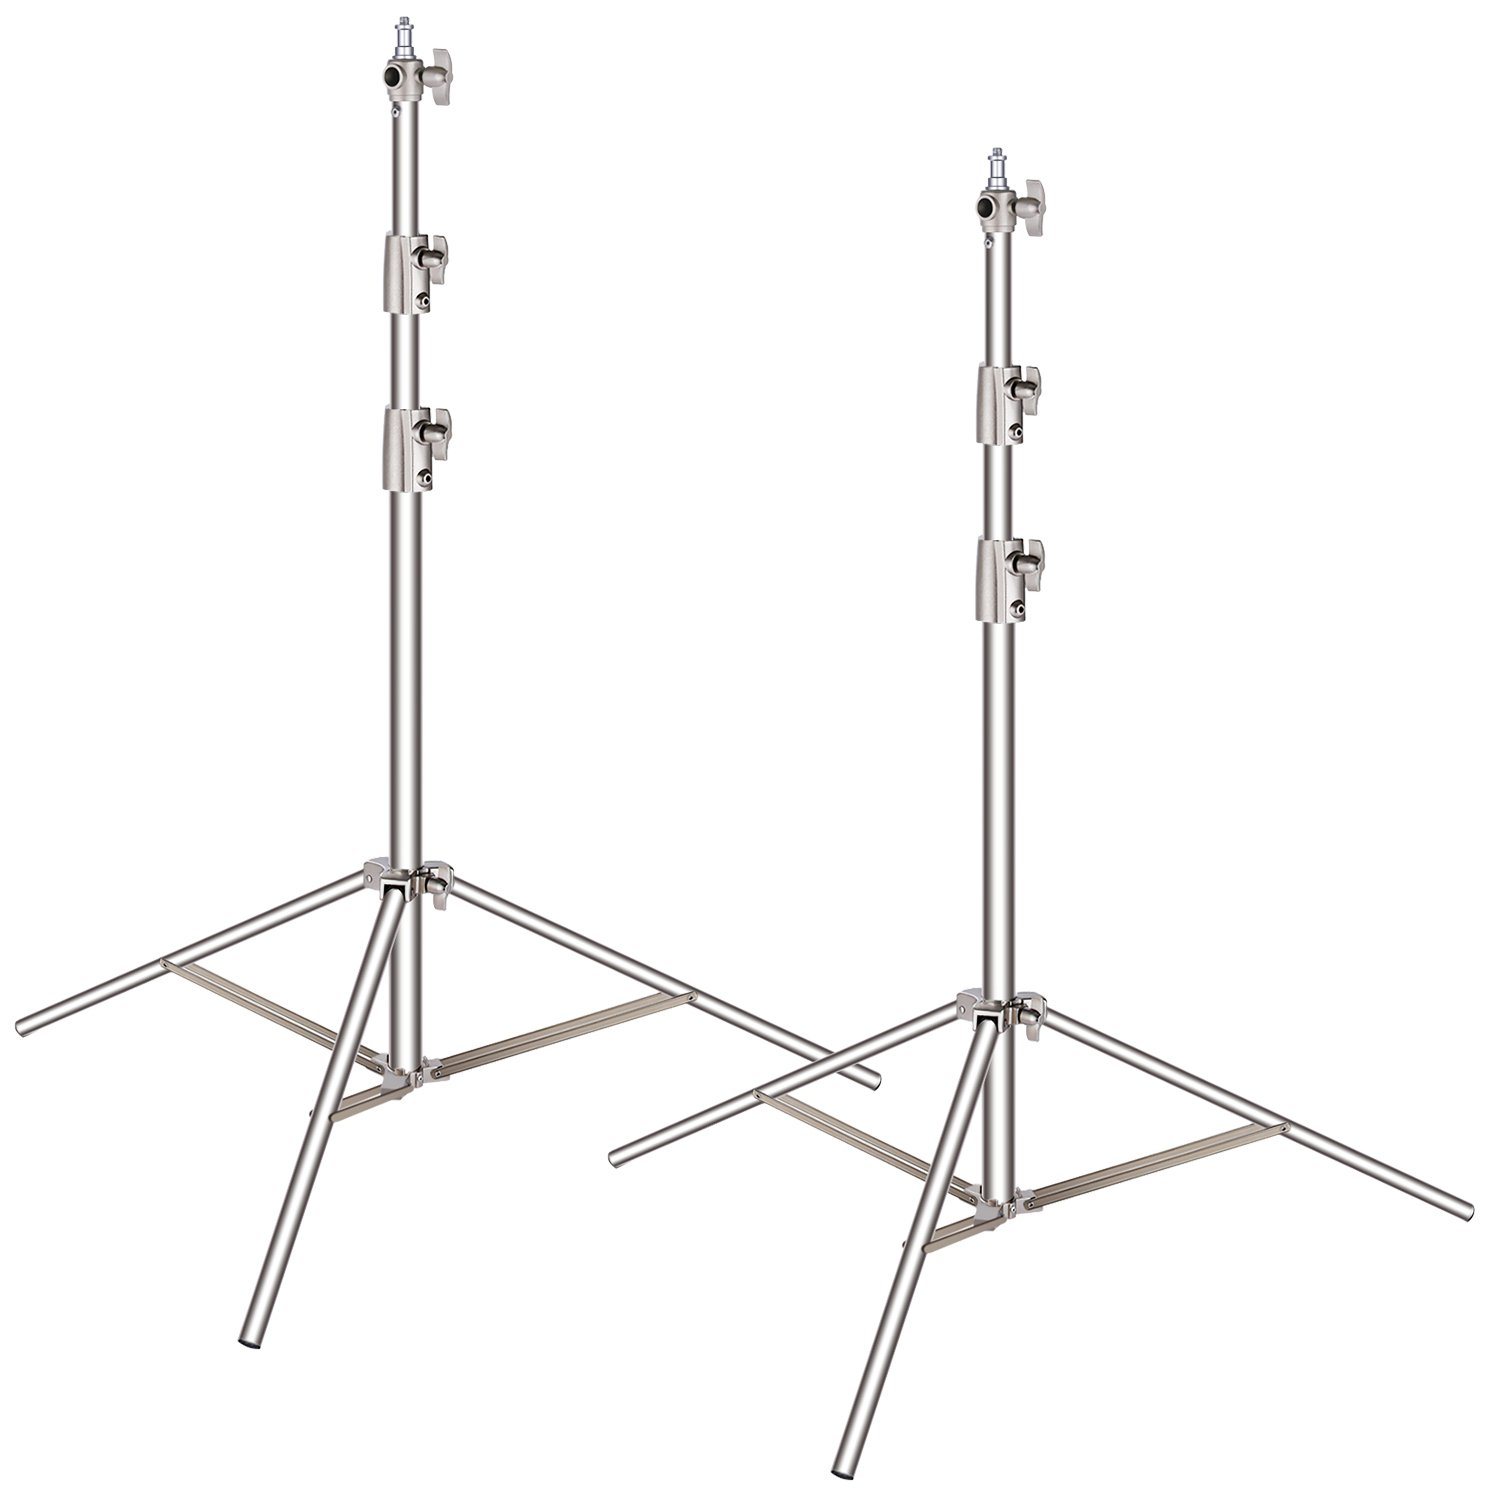 Neewer 2 Pieces Light Stand Kit, 102''/260cm Stainless Steel Heavy Duty with 1/4'' to 3/8'' Adapter for Studio Softbox, Monolight and Other Photographic Equipment by Neewer